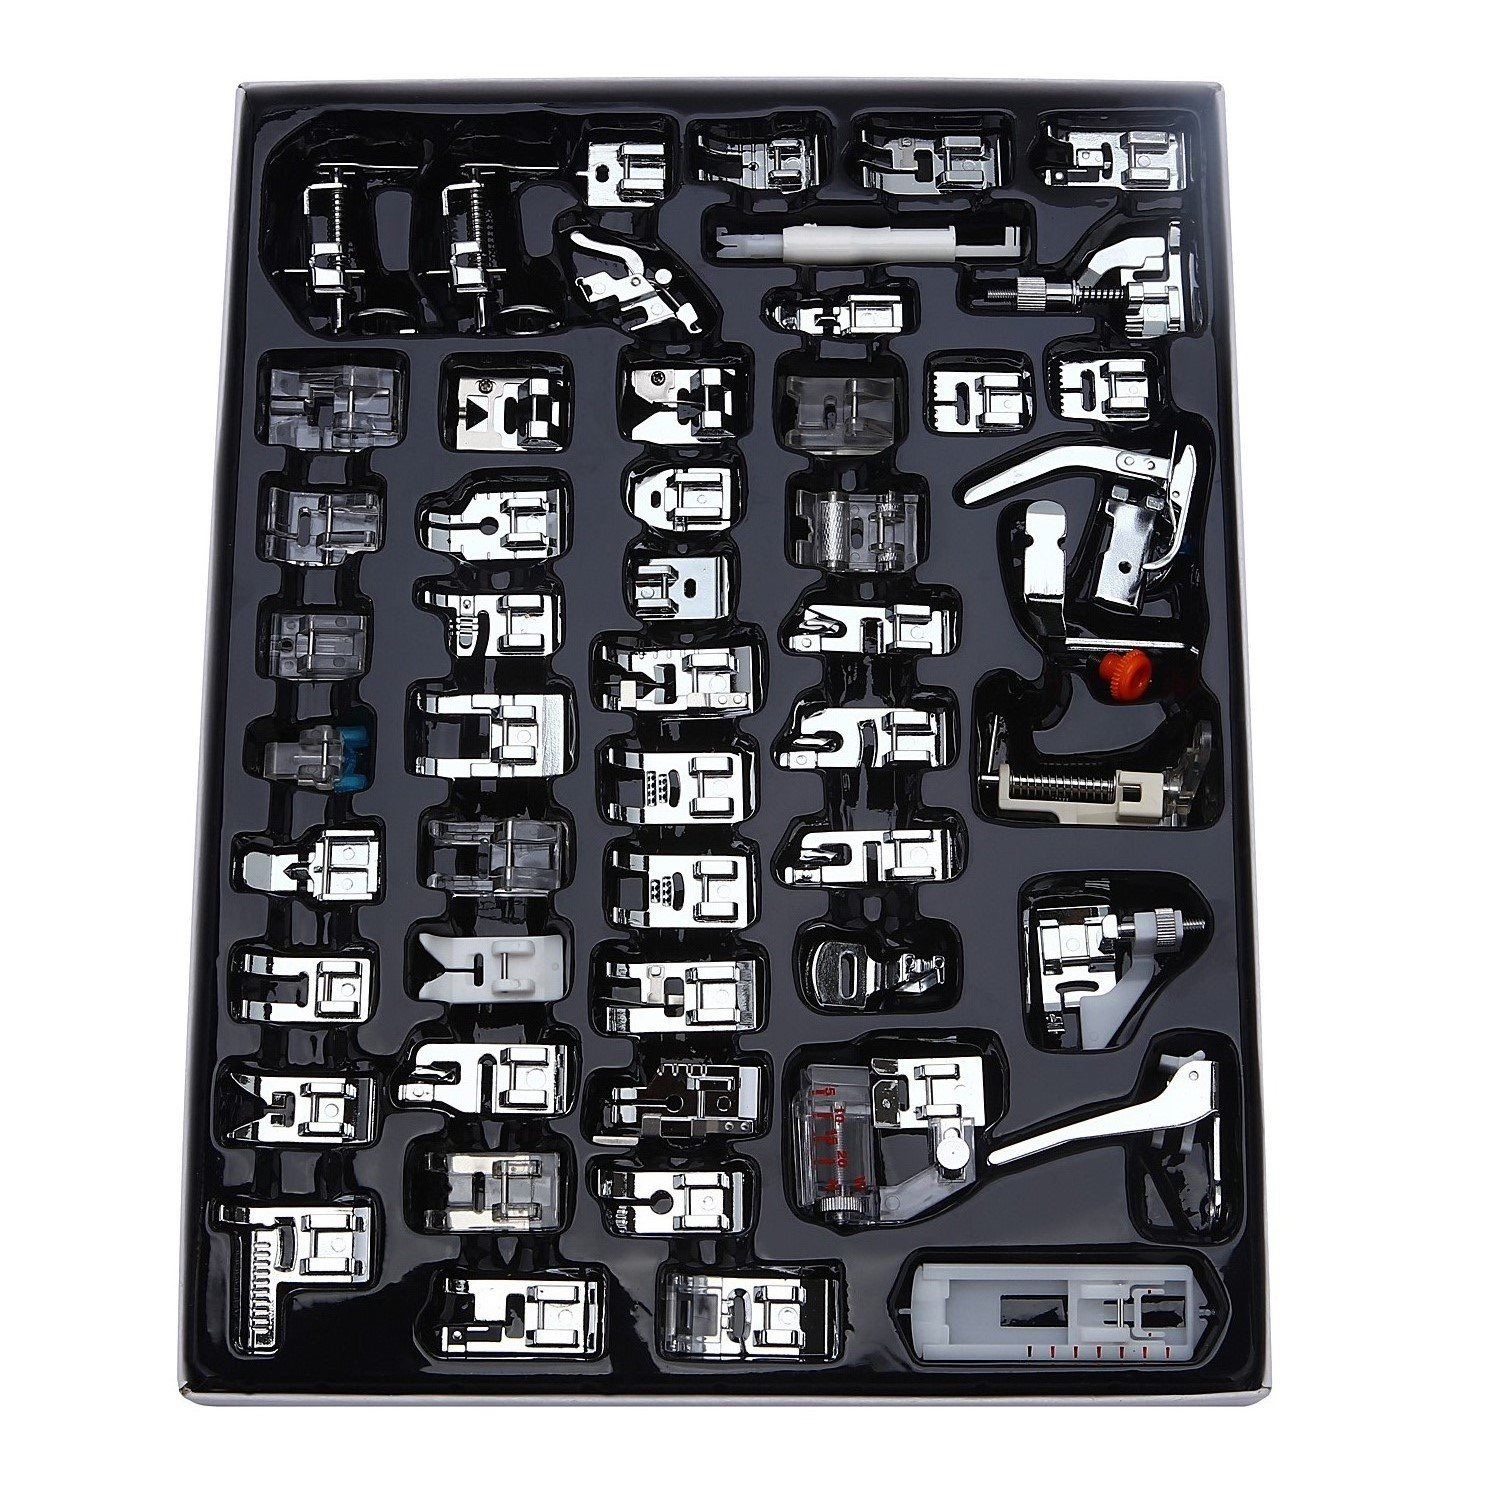 62 Pieces Elna New Home Toyota Simplicity Aiskaer Professional 62pcs Sewing Machine Presser Feet Set for Brother Singer Babylock Janome Kenmore,